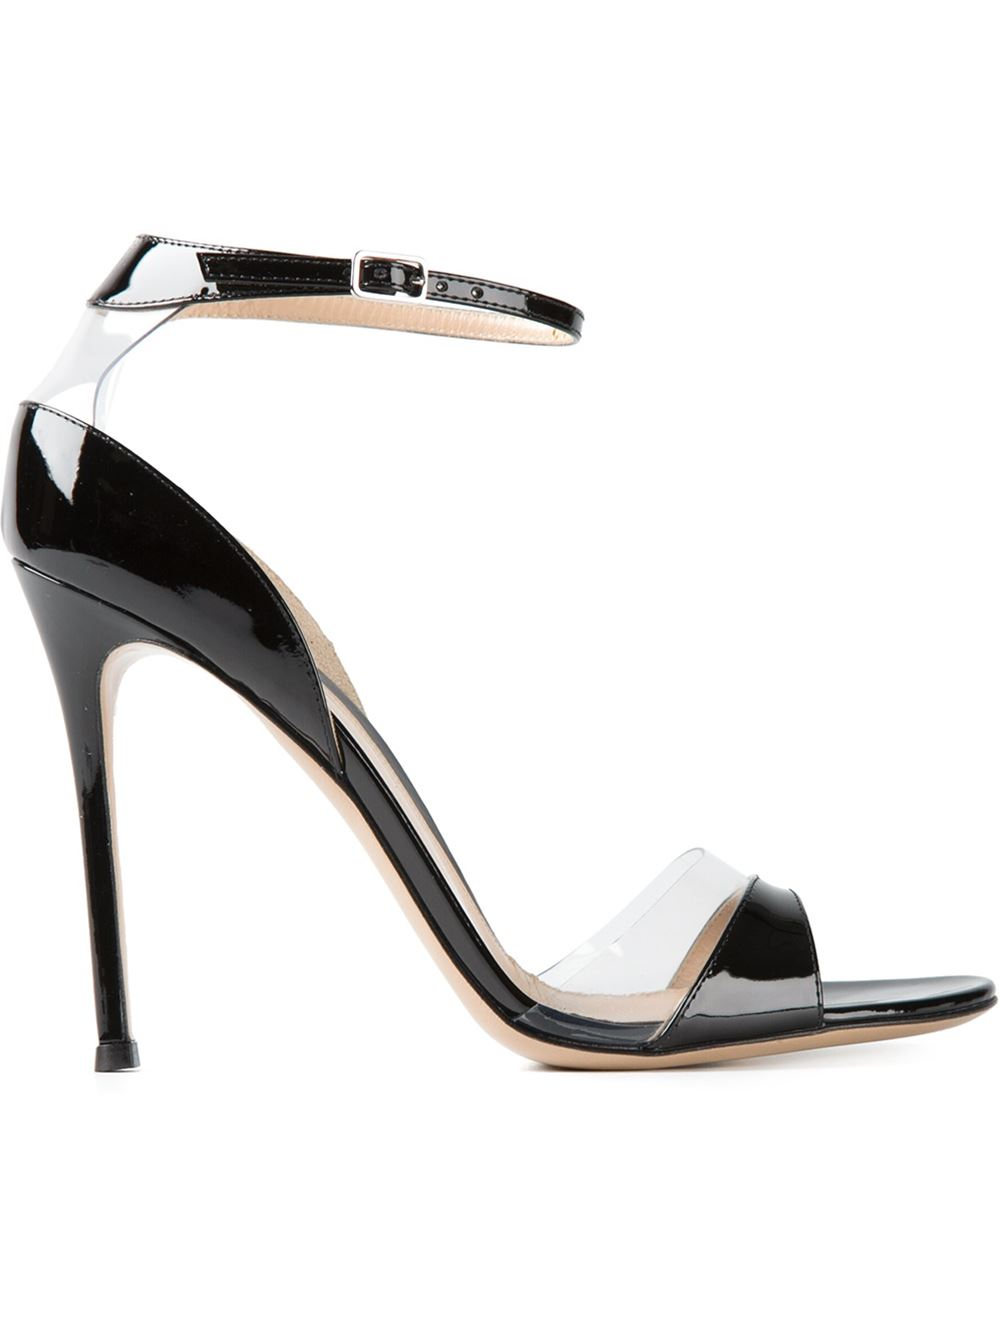 Gianvito Rossi Shoes Sale